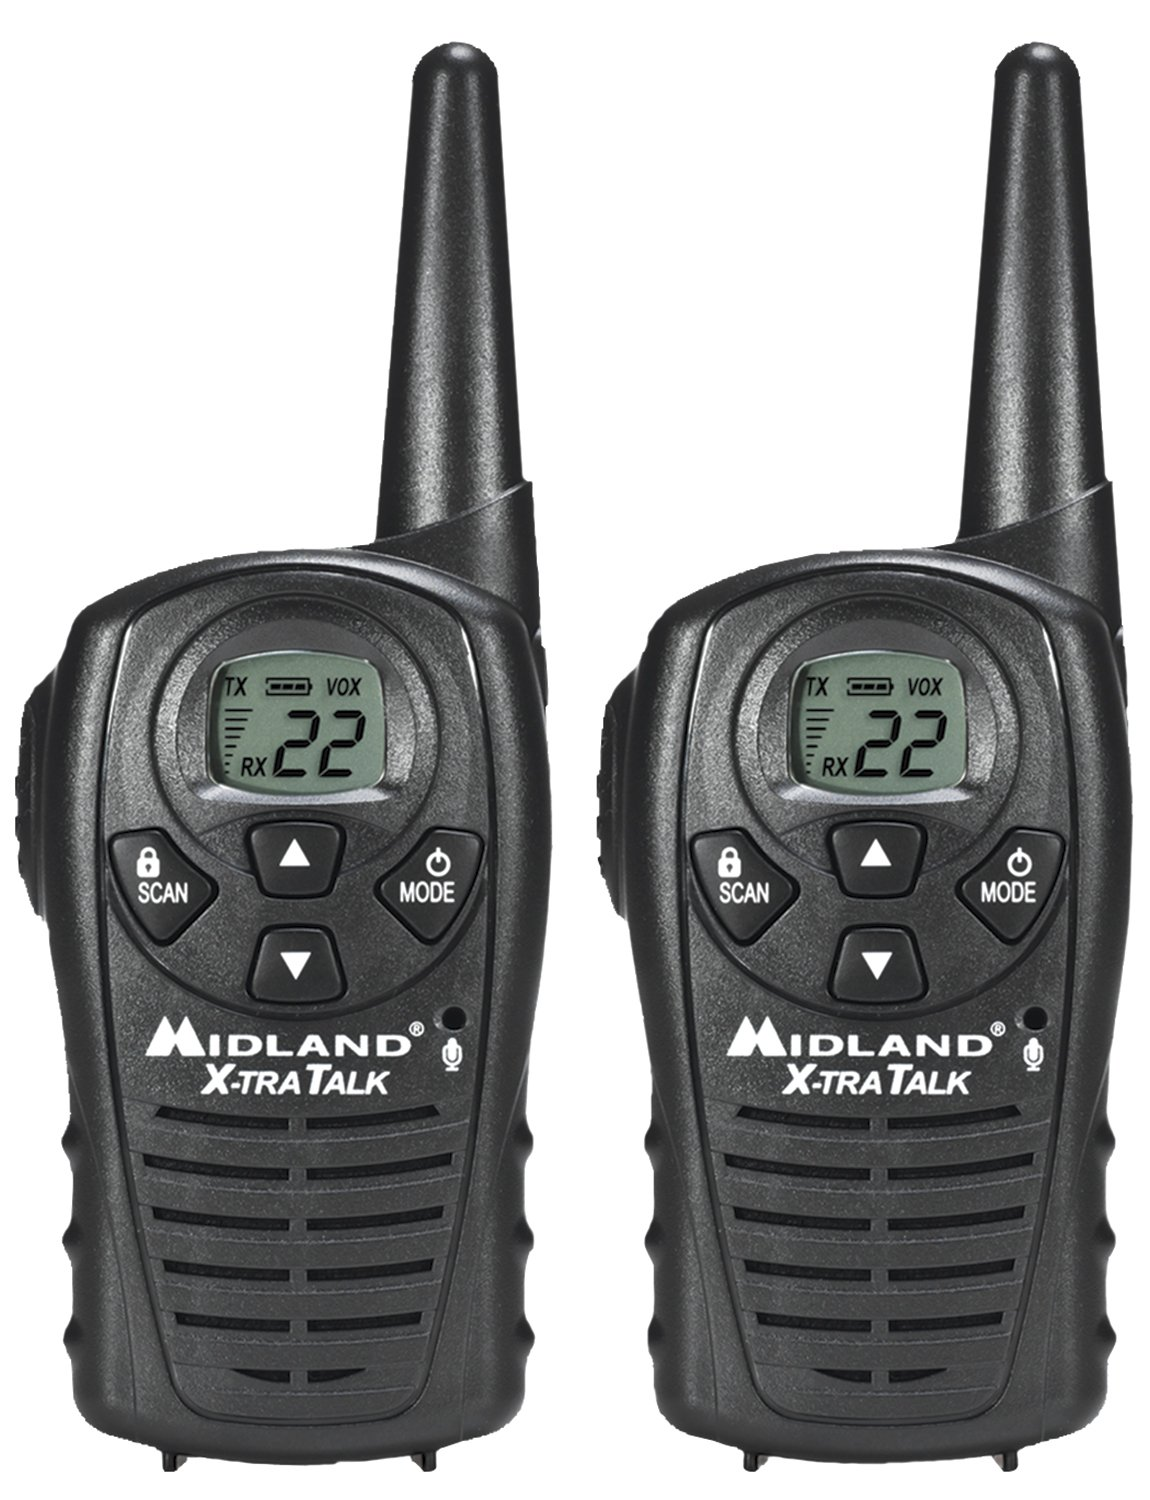 Midland Walkie Talkie >> Details About Midland Walkie Talkie 2 Way Radio Long Range